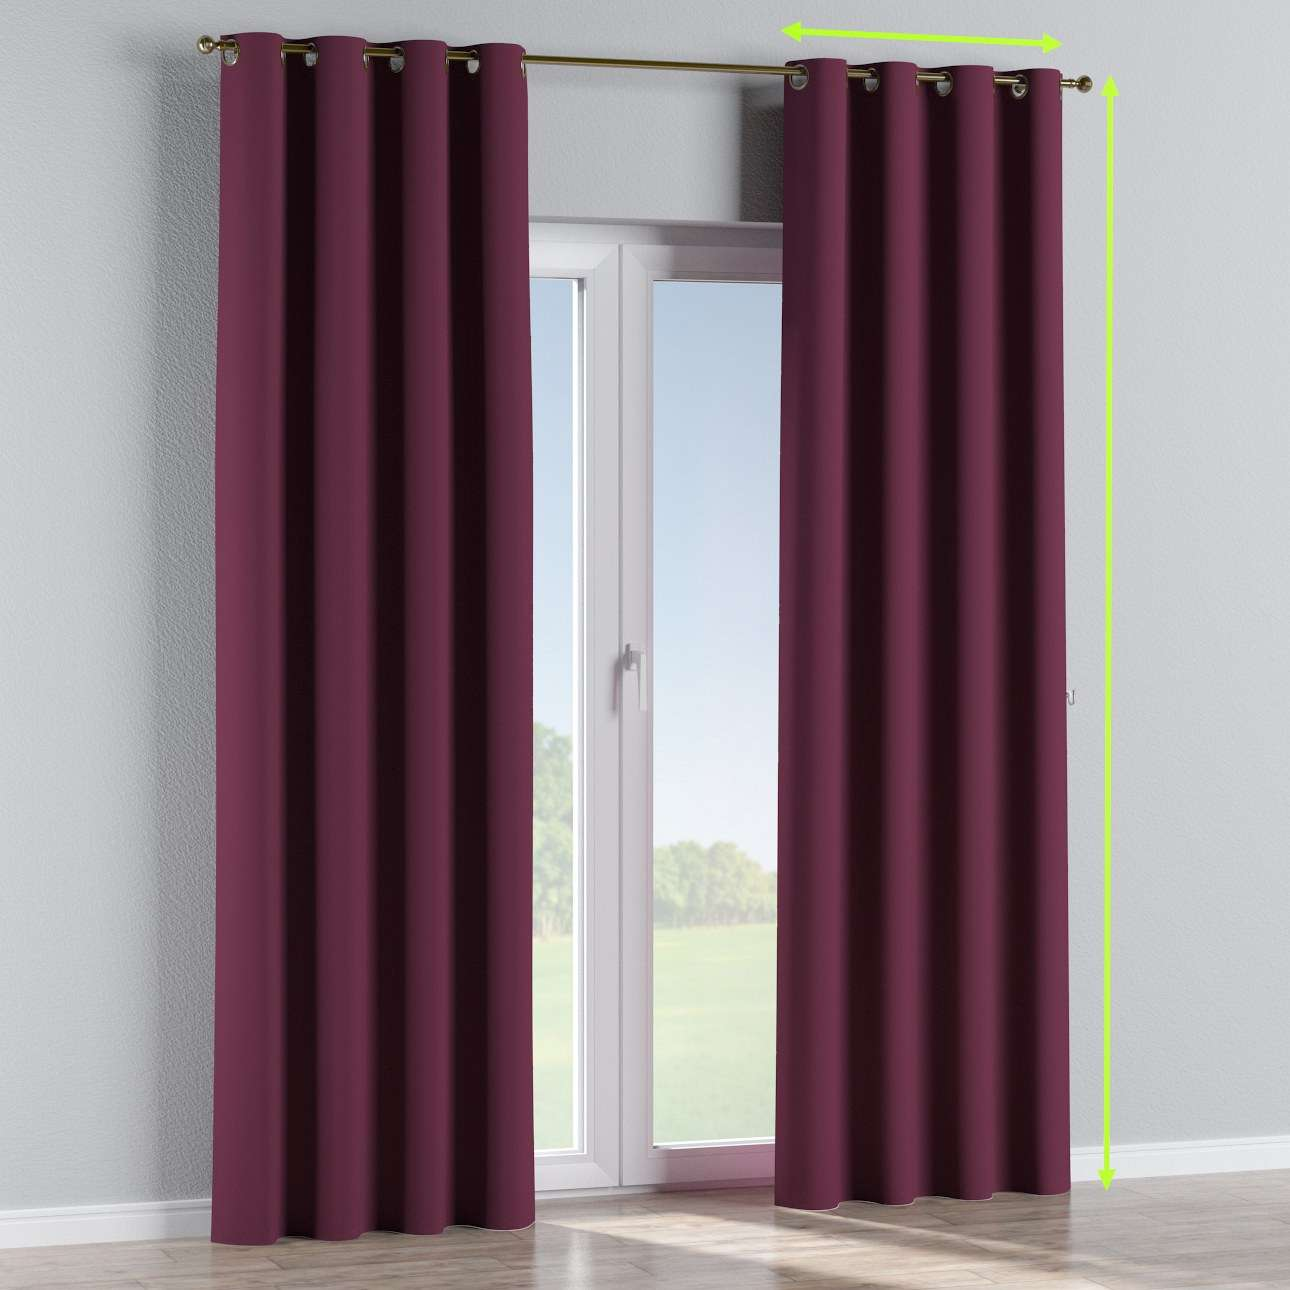 Eyelet curtain in collection Blackout, fabric: 269-53